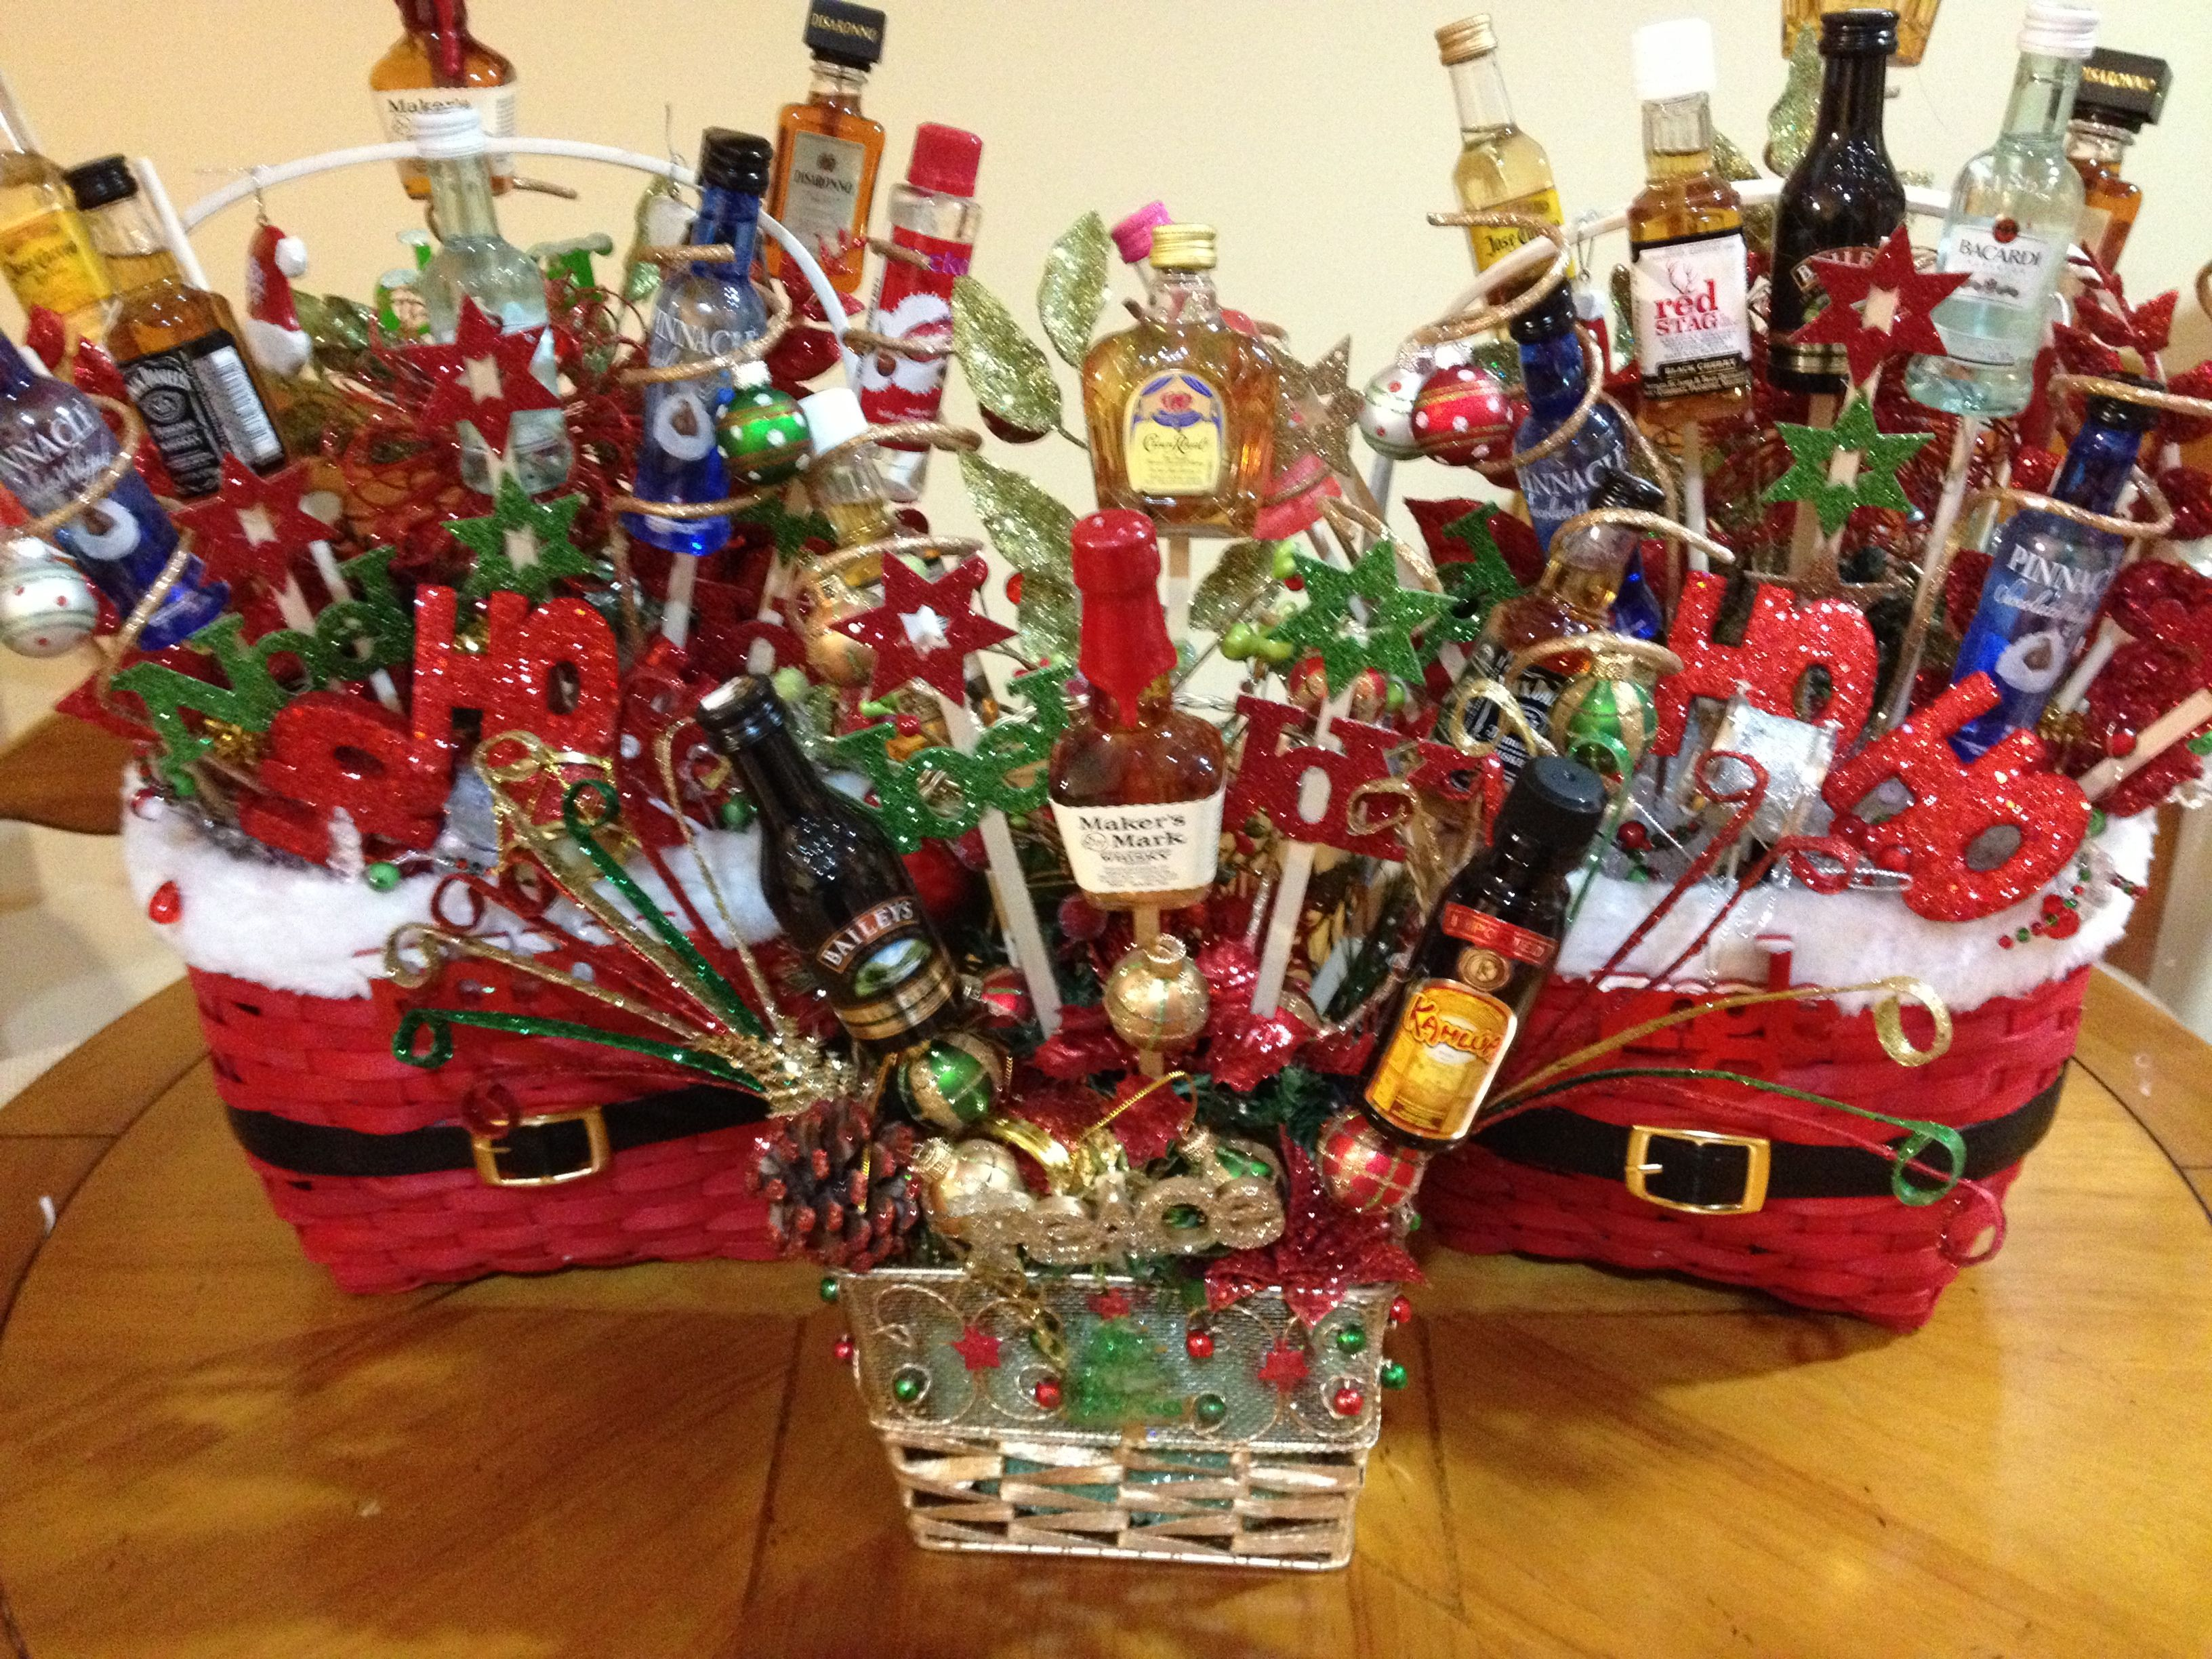 Liquor gift baskets. I made 2 something like these for our